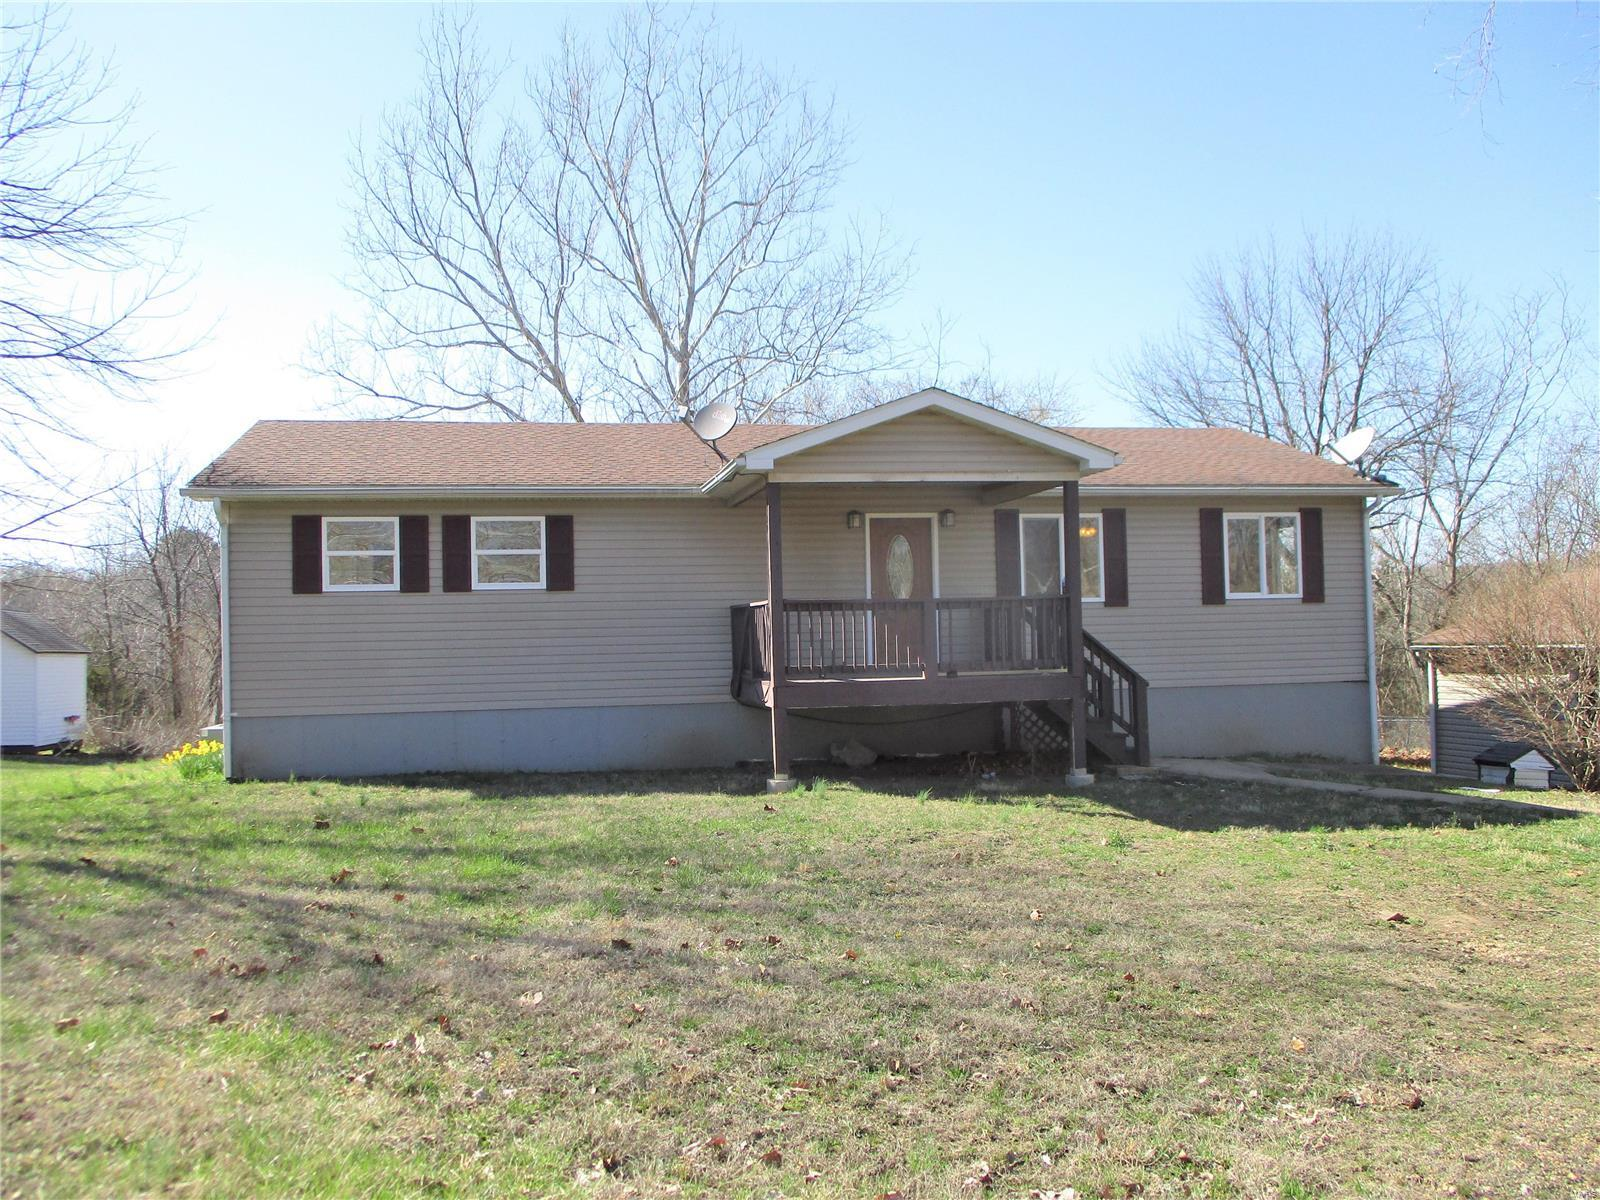 15083 N State Highway 21 Property Photo - Cadet, MO real estate listing